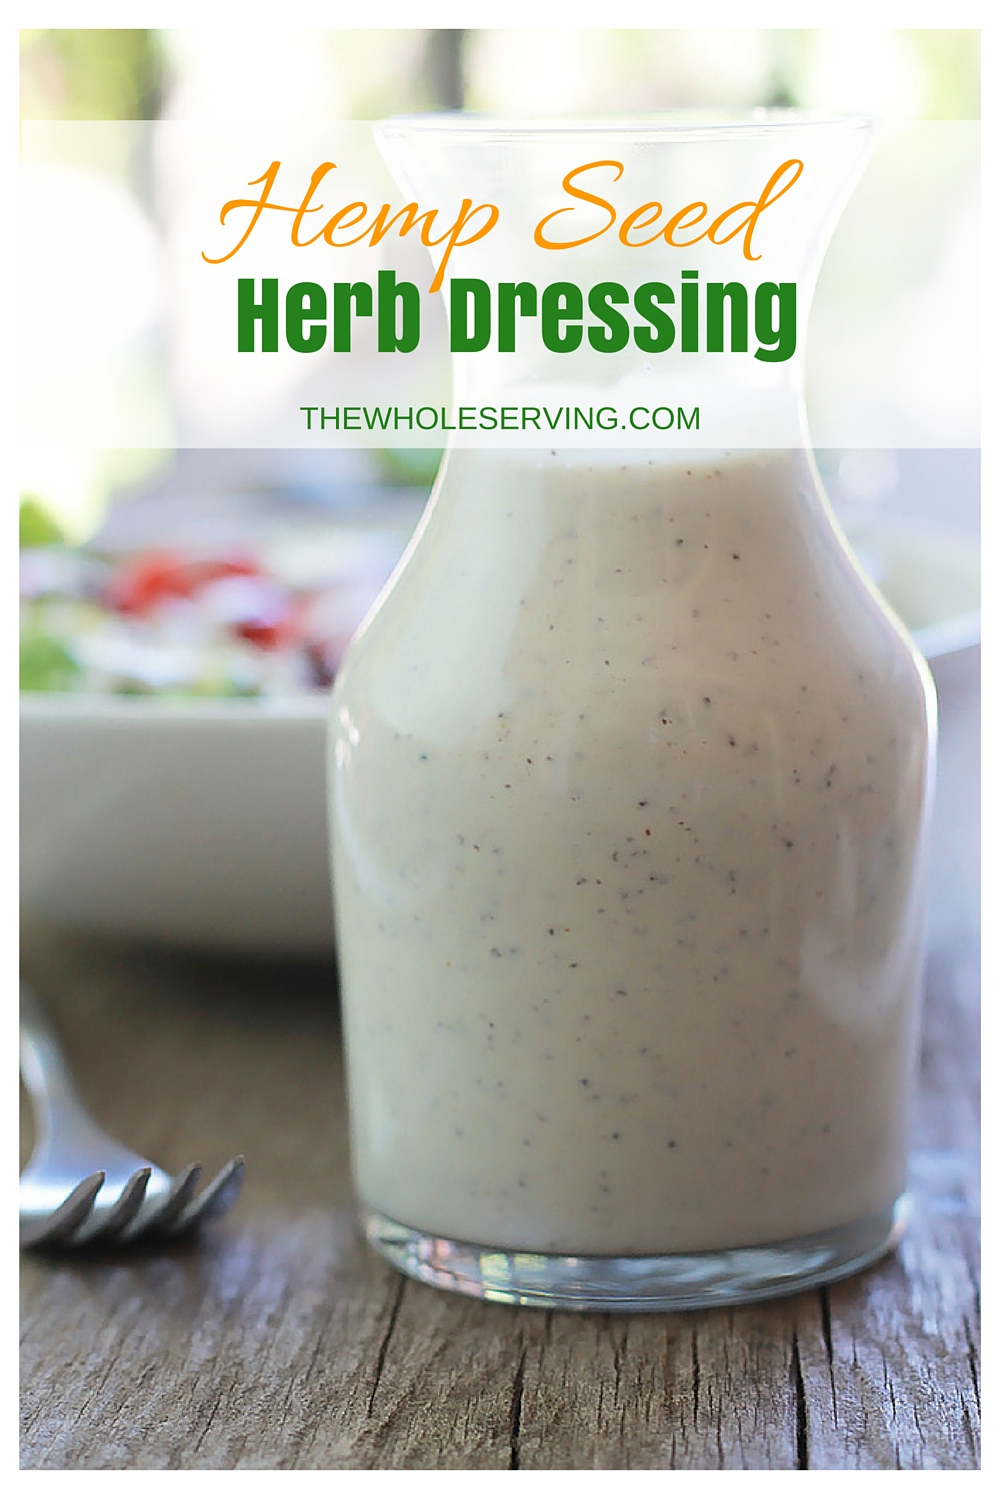 Smooth and creamy nut-free, dairy-free and oil-free Hemp Seed Herb Dressing! Perfect for salads, sandwiches,vegetables raw or roasted, use it on just about everything.